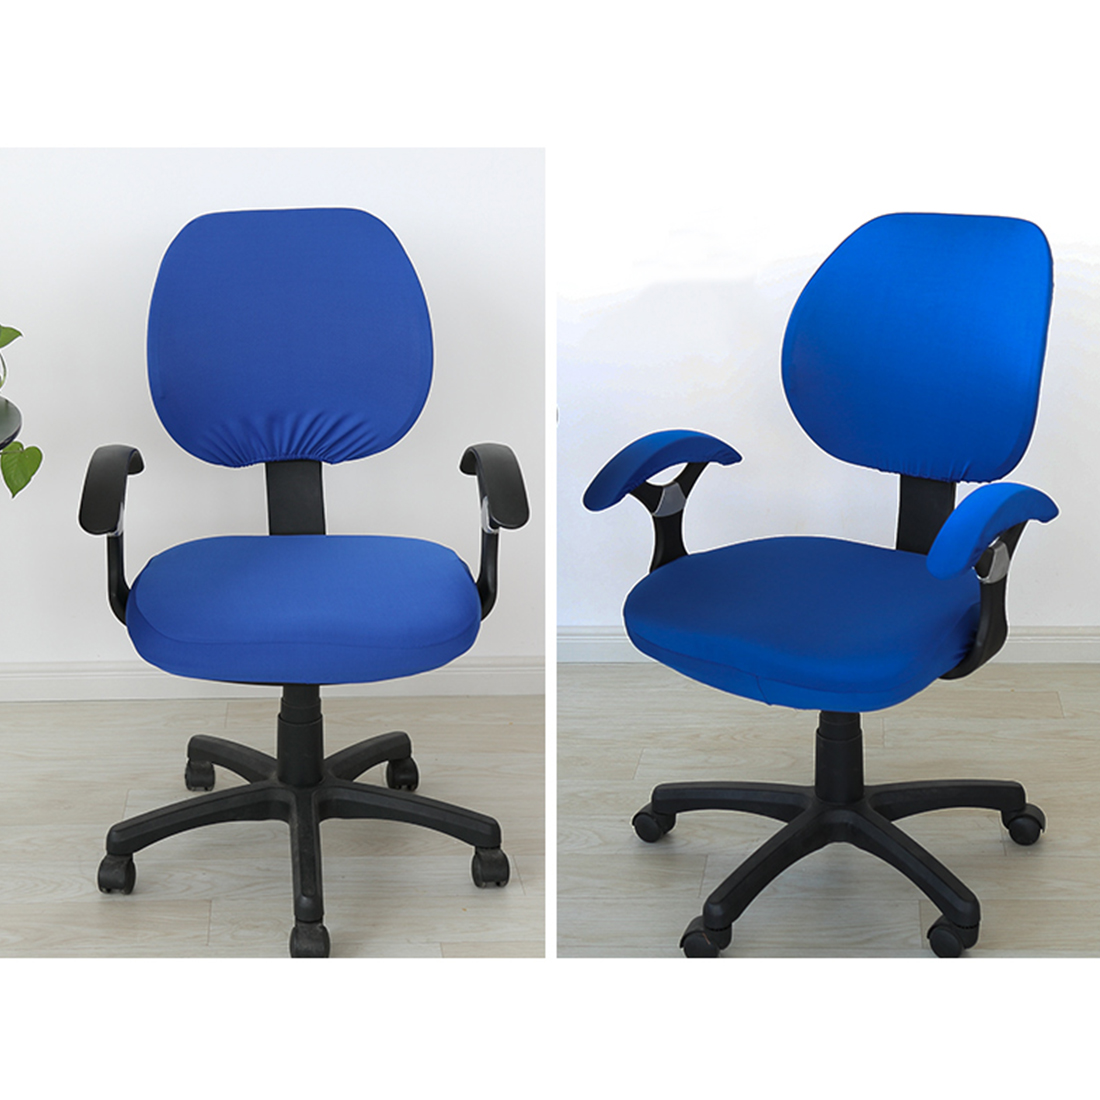 Top Sale Elastic Fabric Spandex Seat Covers For Computer Chairs Office Chair Gaming Chair Easy Washable Removeable